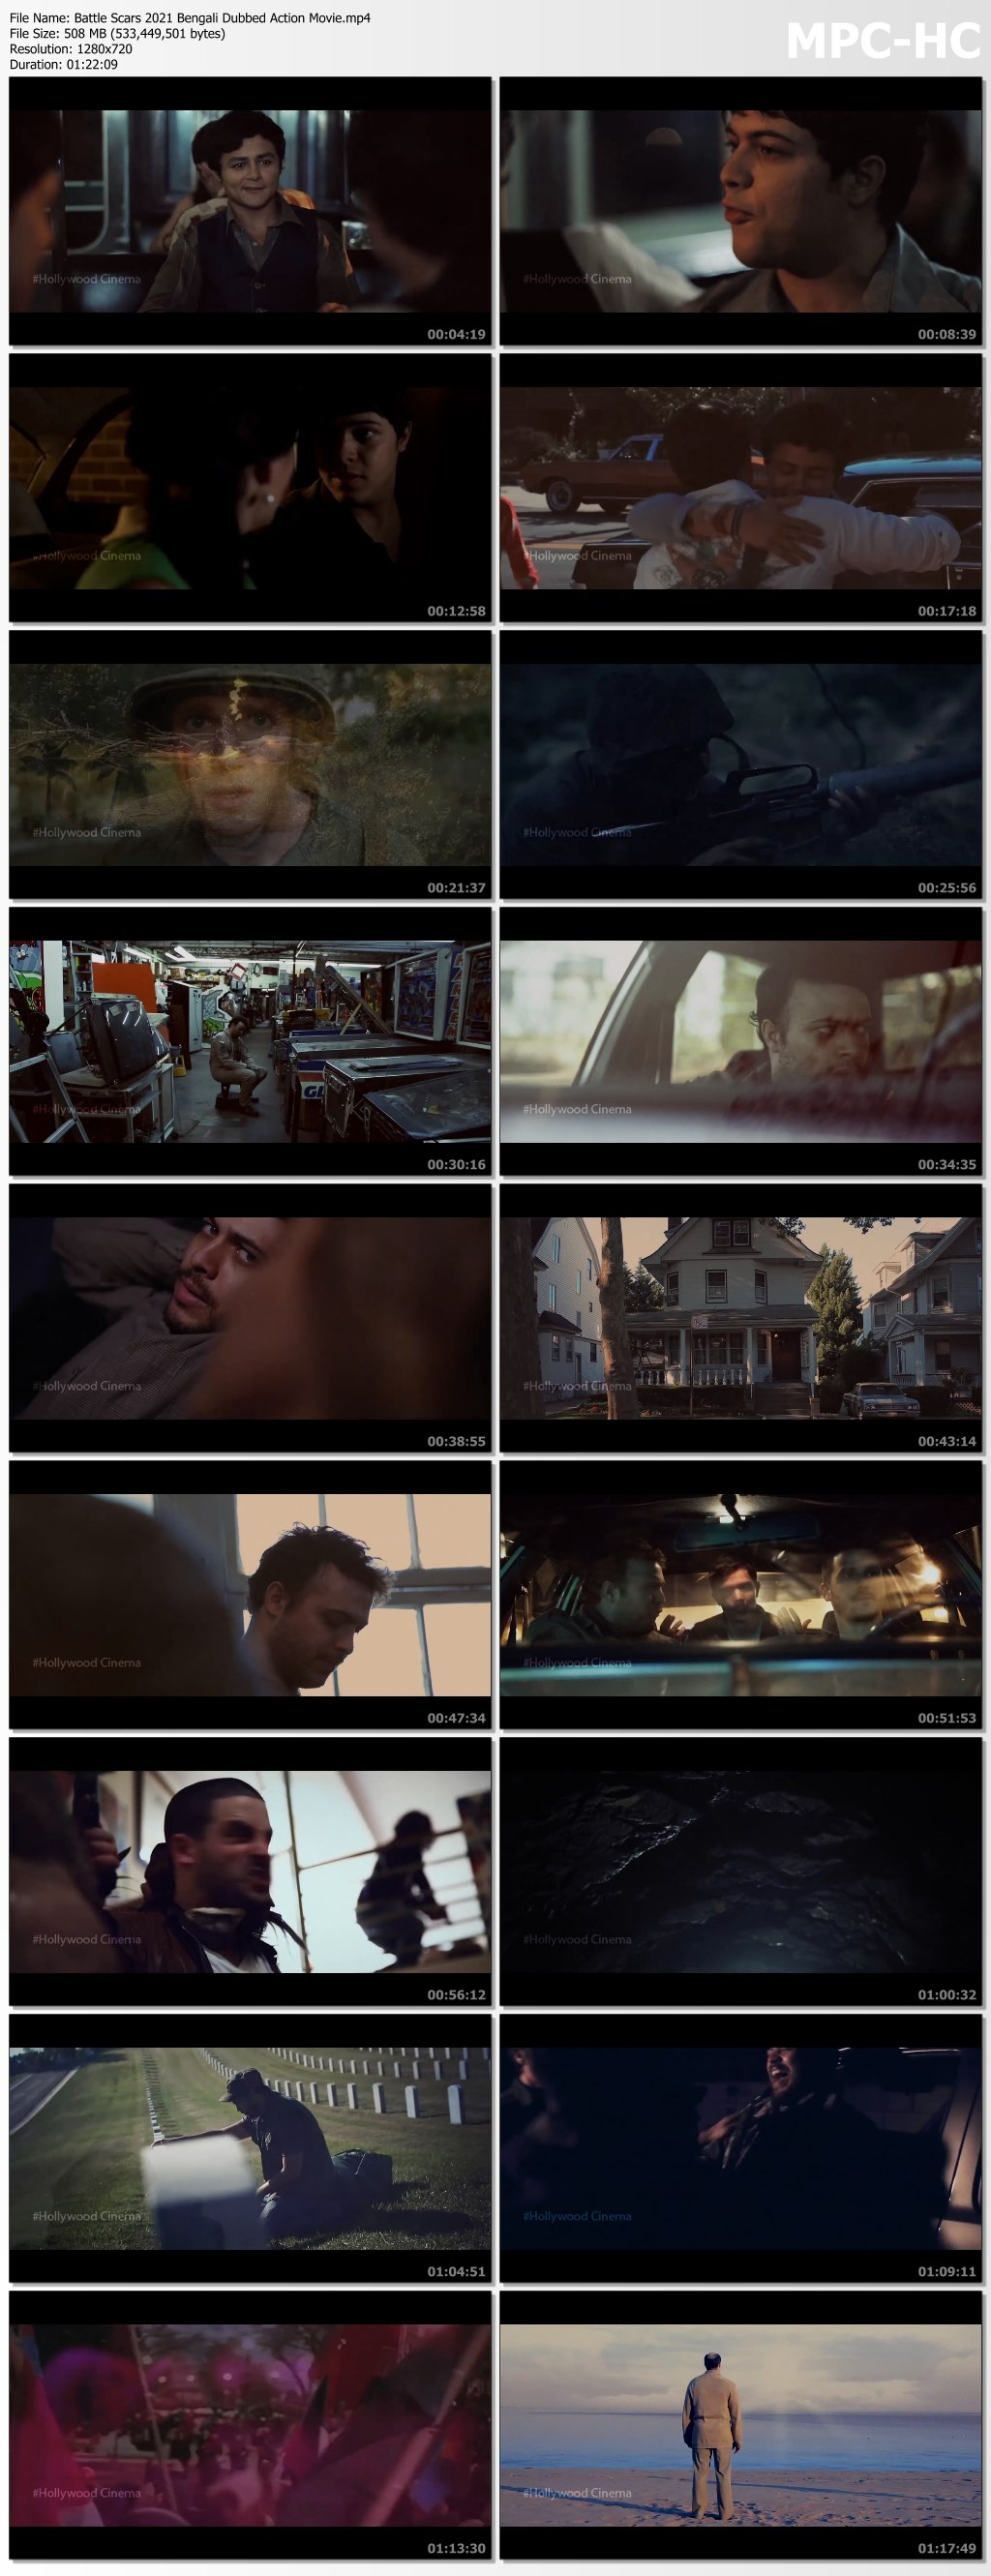 Battle Scars 2021 Bengali Dubbed Action Movie.mp4 thumbs